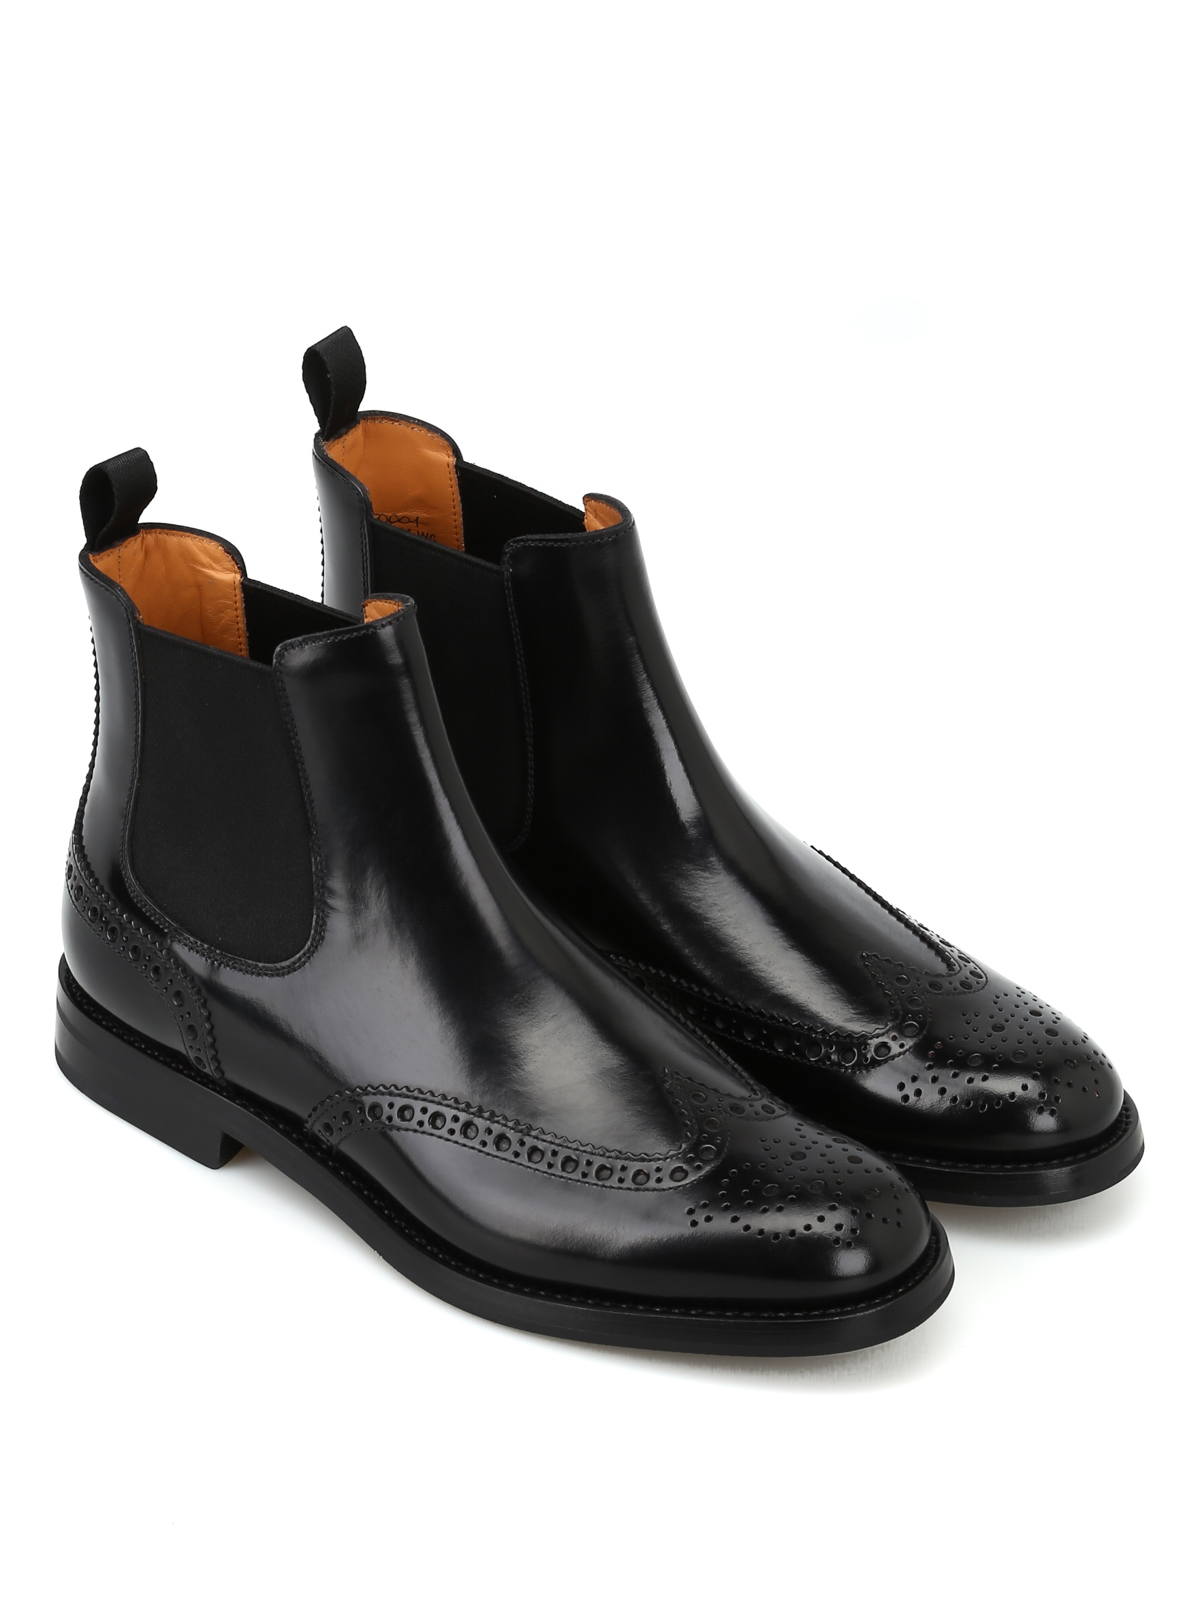 df349e611f074 Church's - Black polish binder brogue Chelsea boots - ankle boots ...